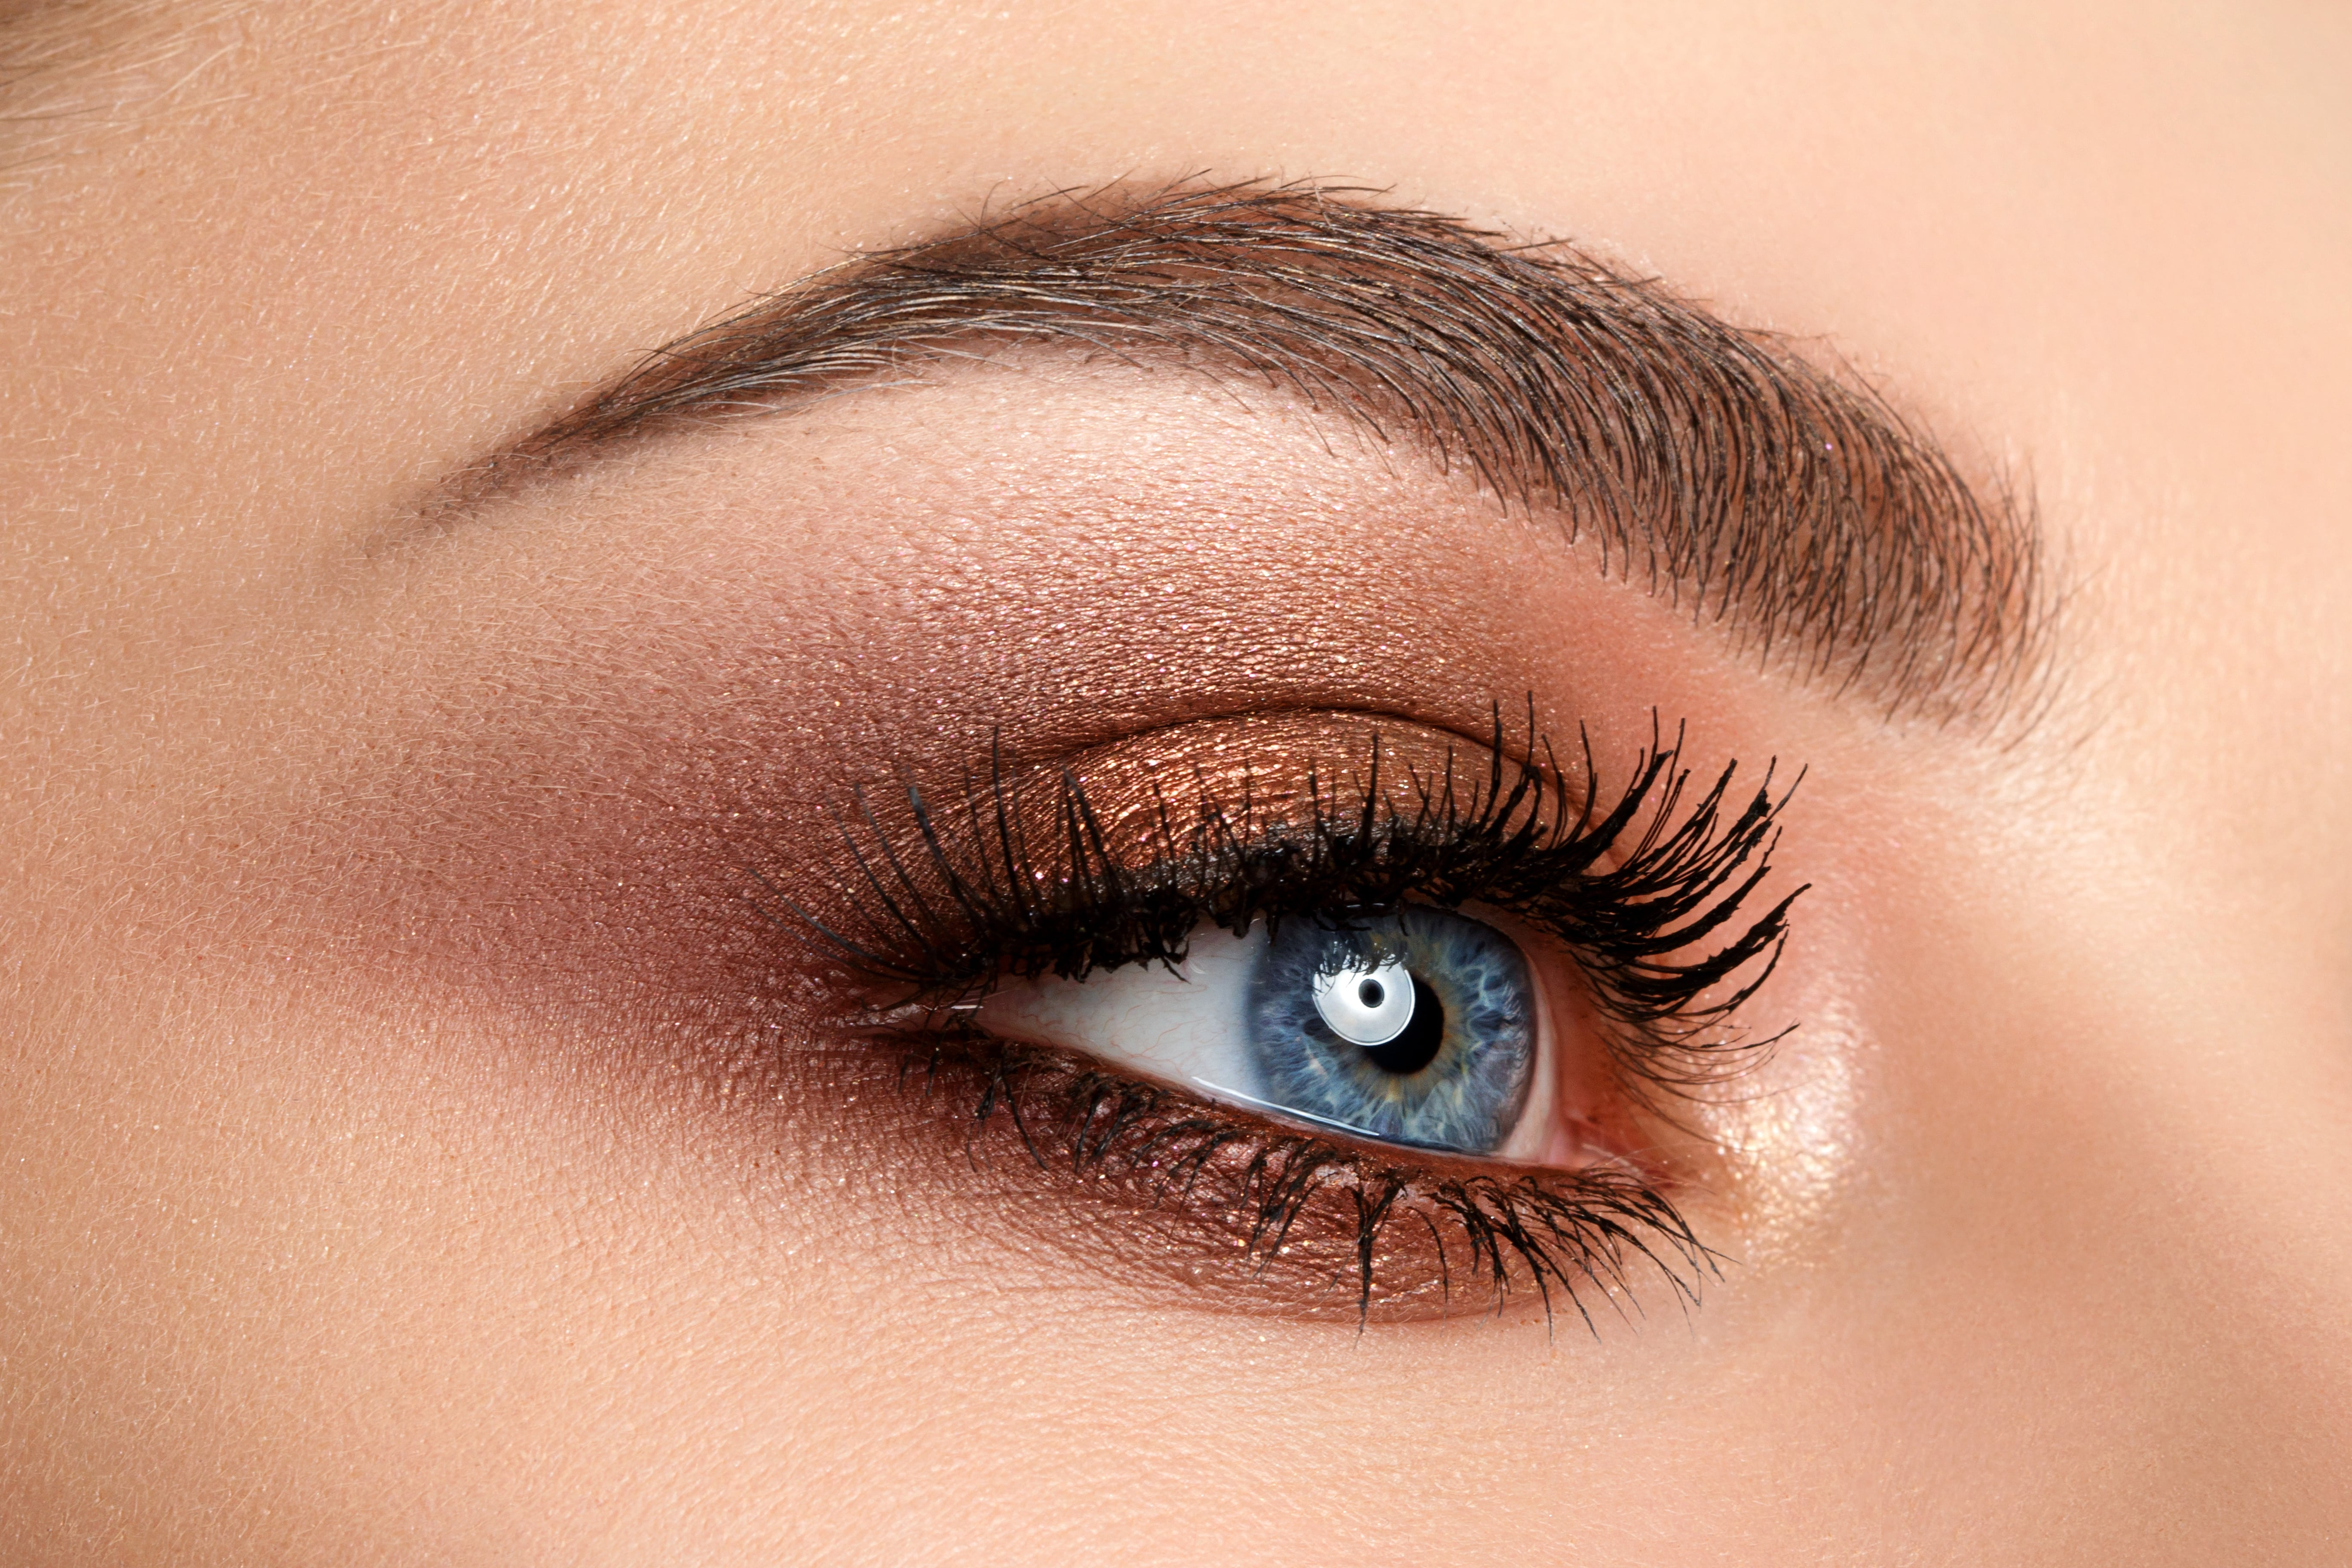 shutterstock_1024369165-min-1 Brow Microblading in Scottsdale